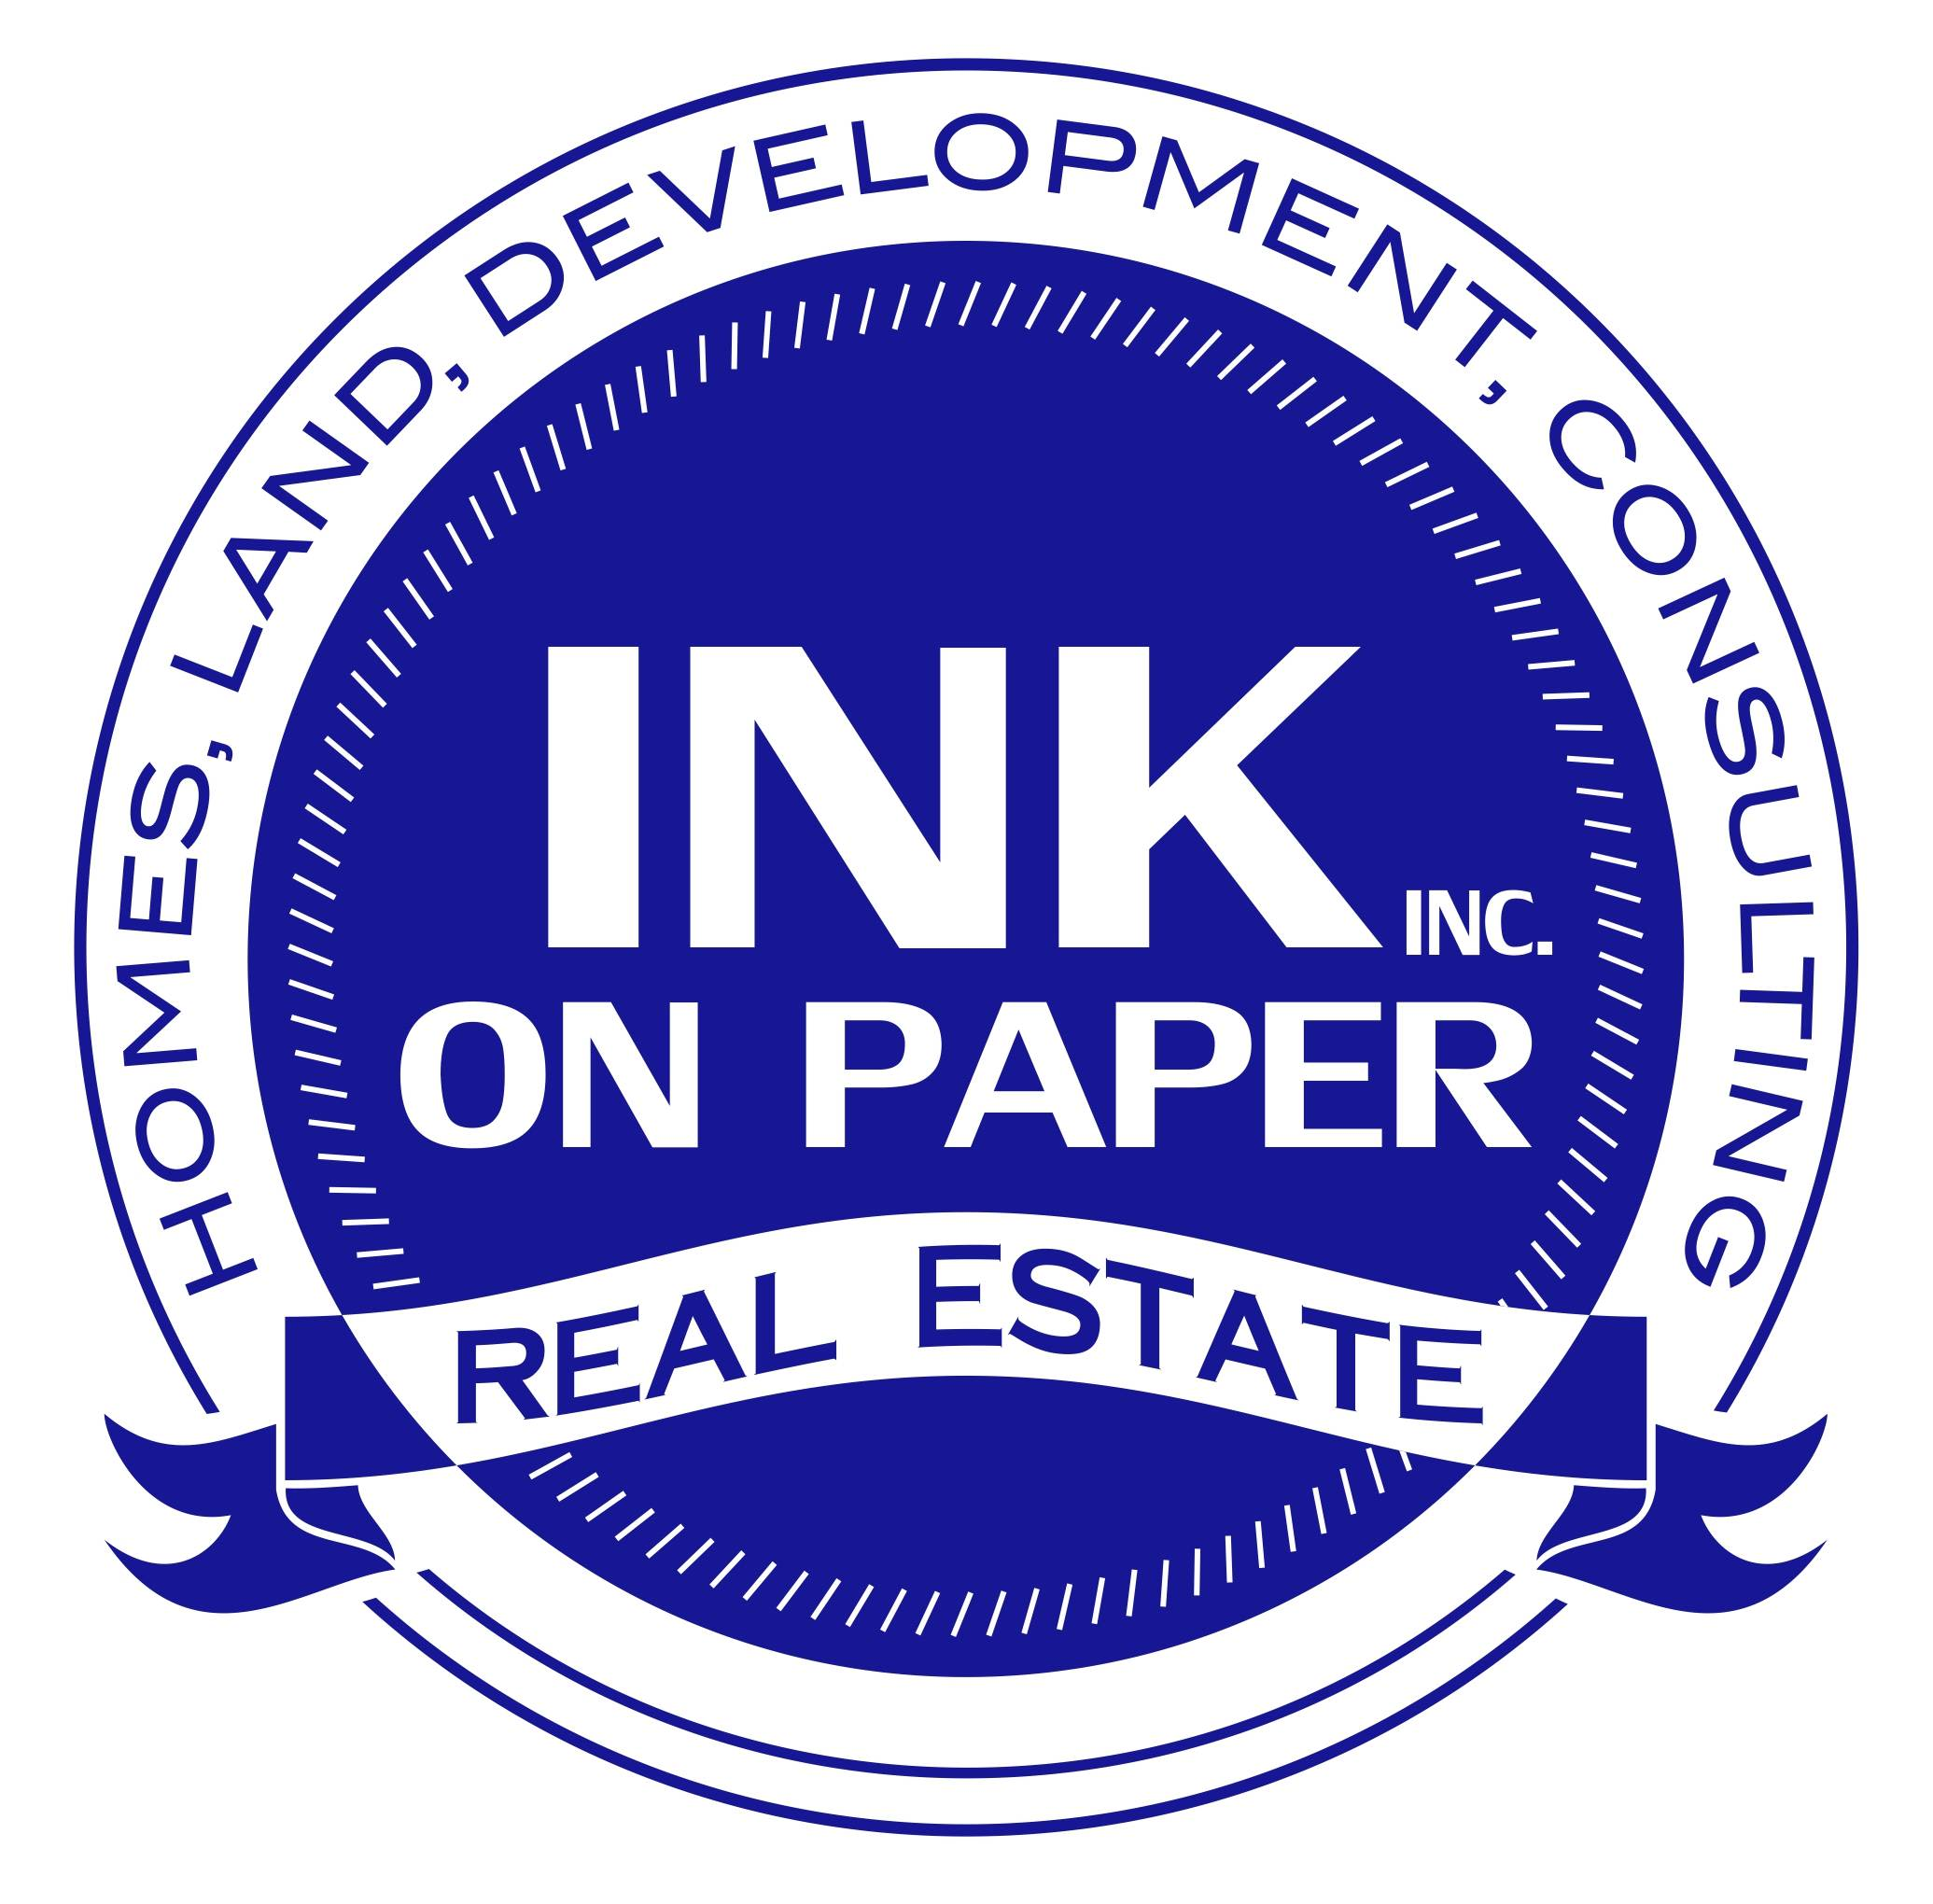 Tim Roehl - Ink on Paper Real Estate